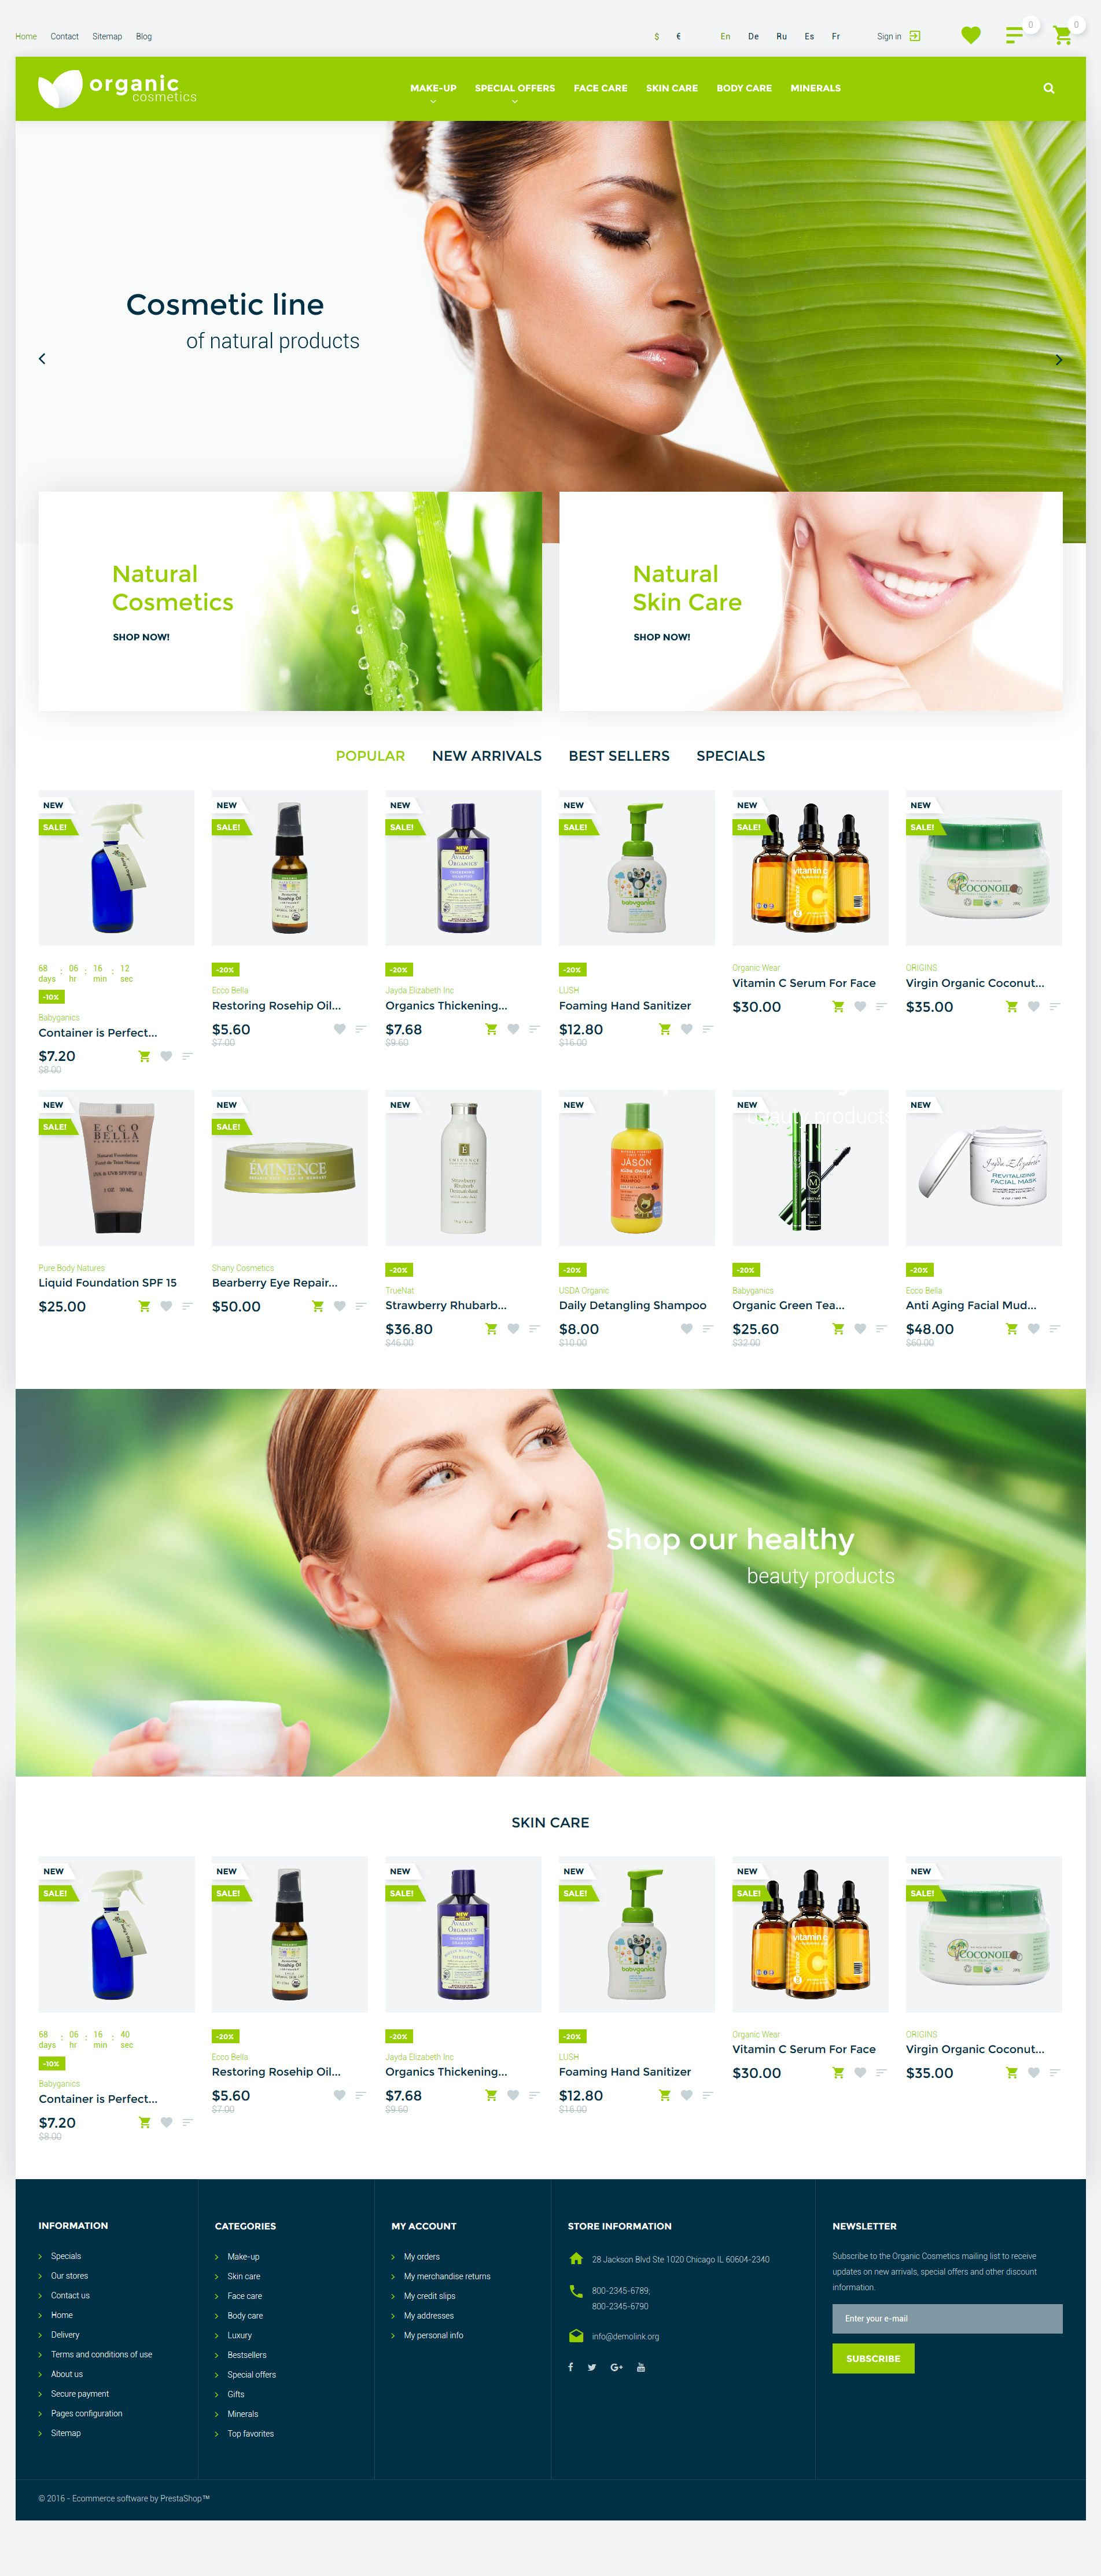 More Than Website Templates Available Choose Your Theme And Build A Professional Looking Site Today